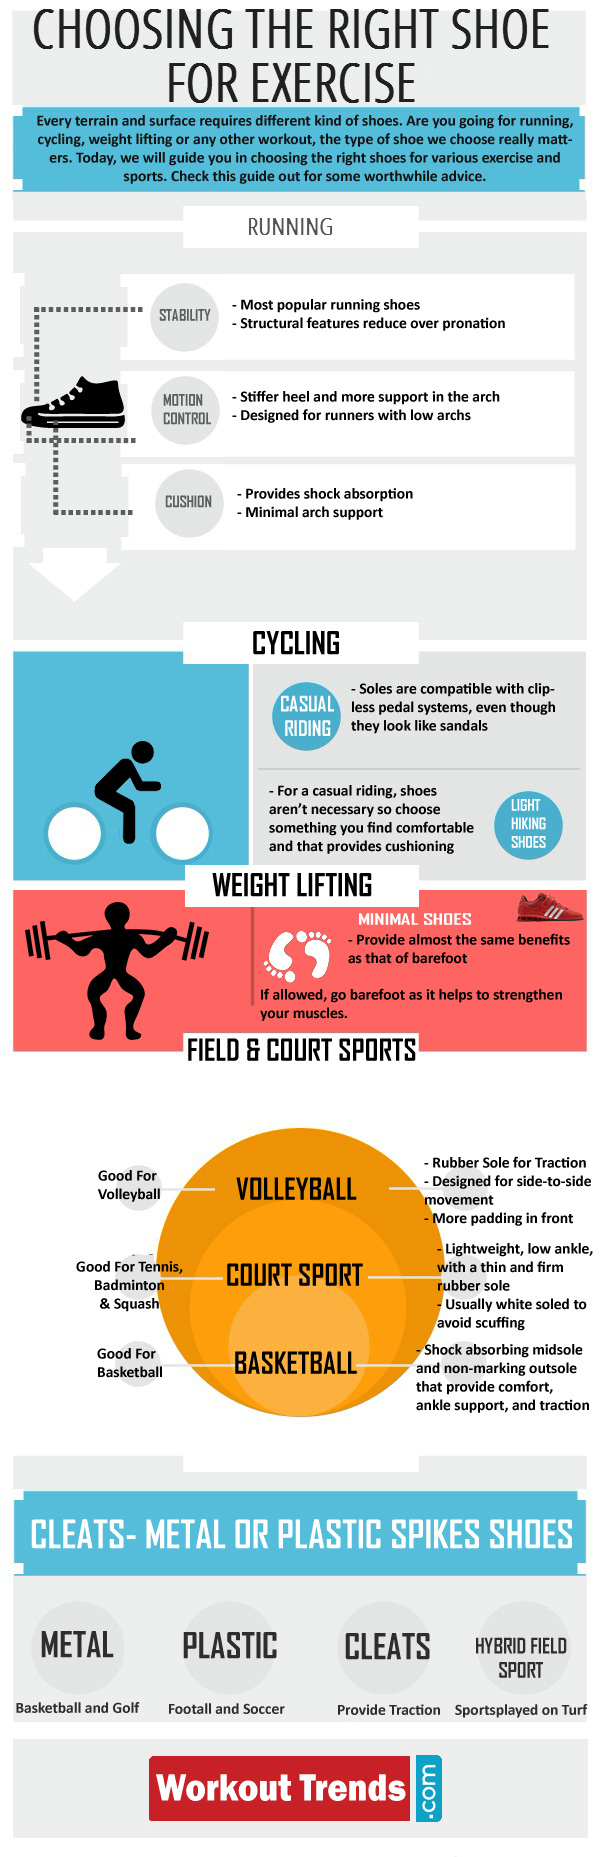 How-to-choose-the-right-shoes-for-exercise--sports-infographic_530c99c0c5e33